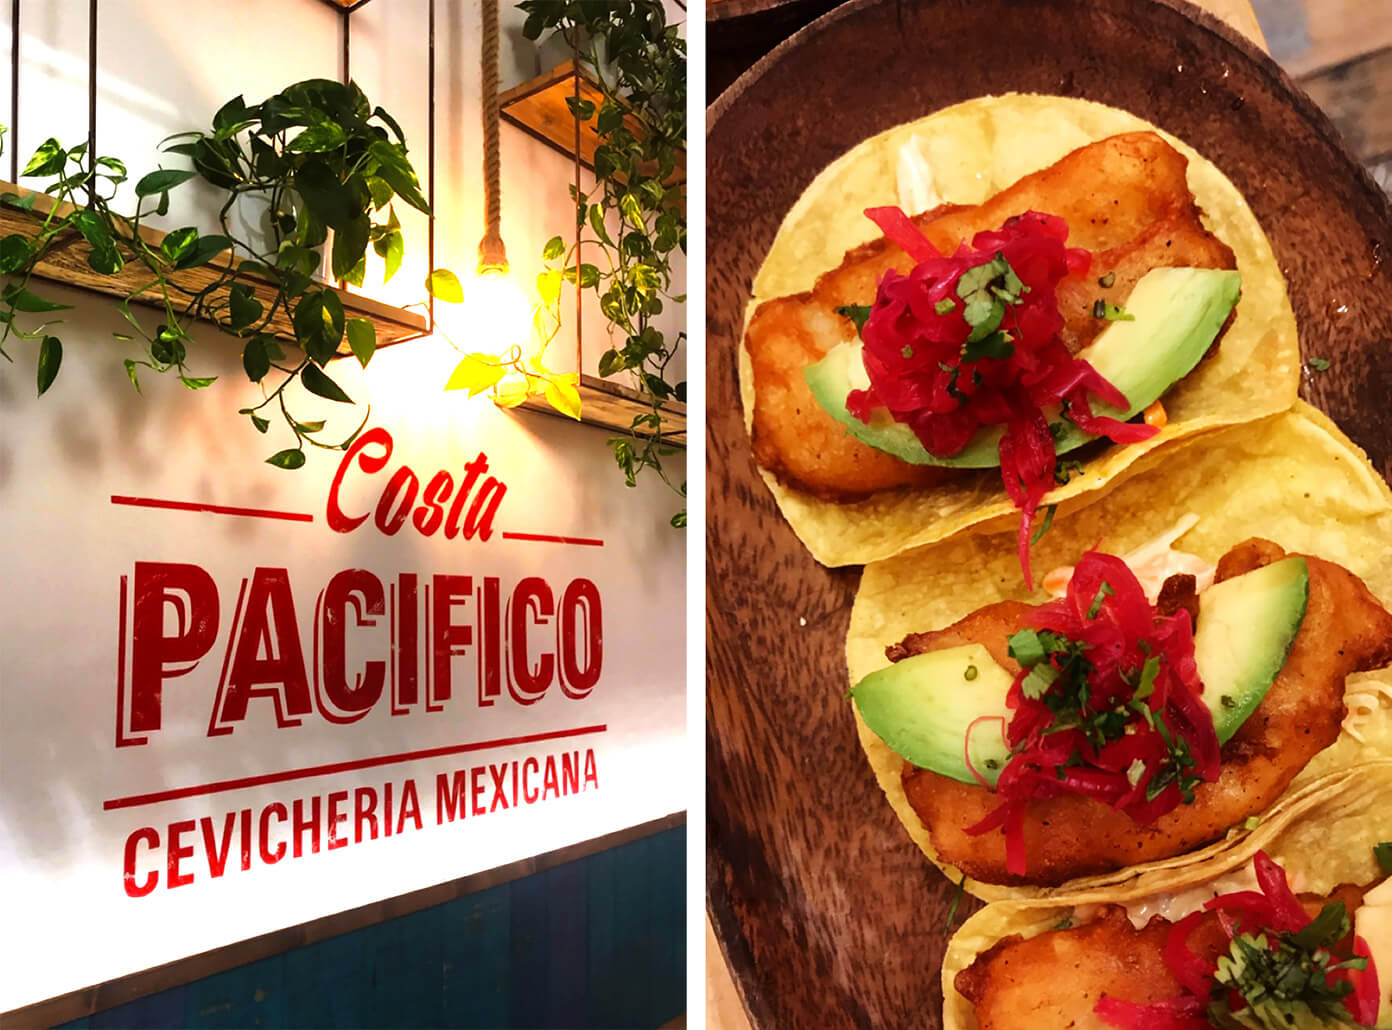 Costa Pacifico Mexican seafood | Gimme Some Barcelona Travel Guide